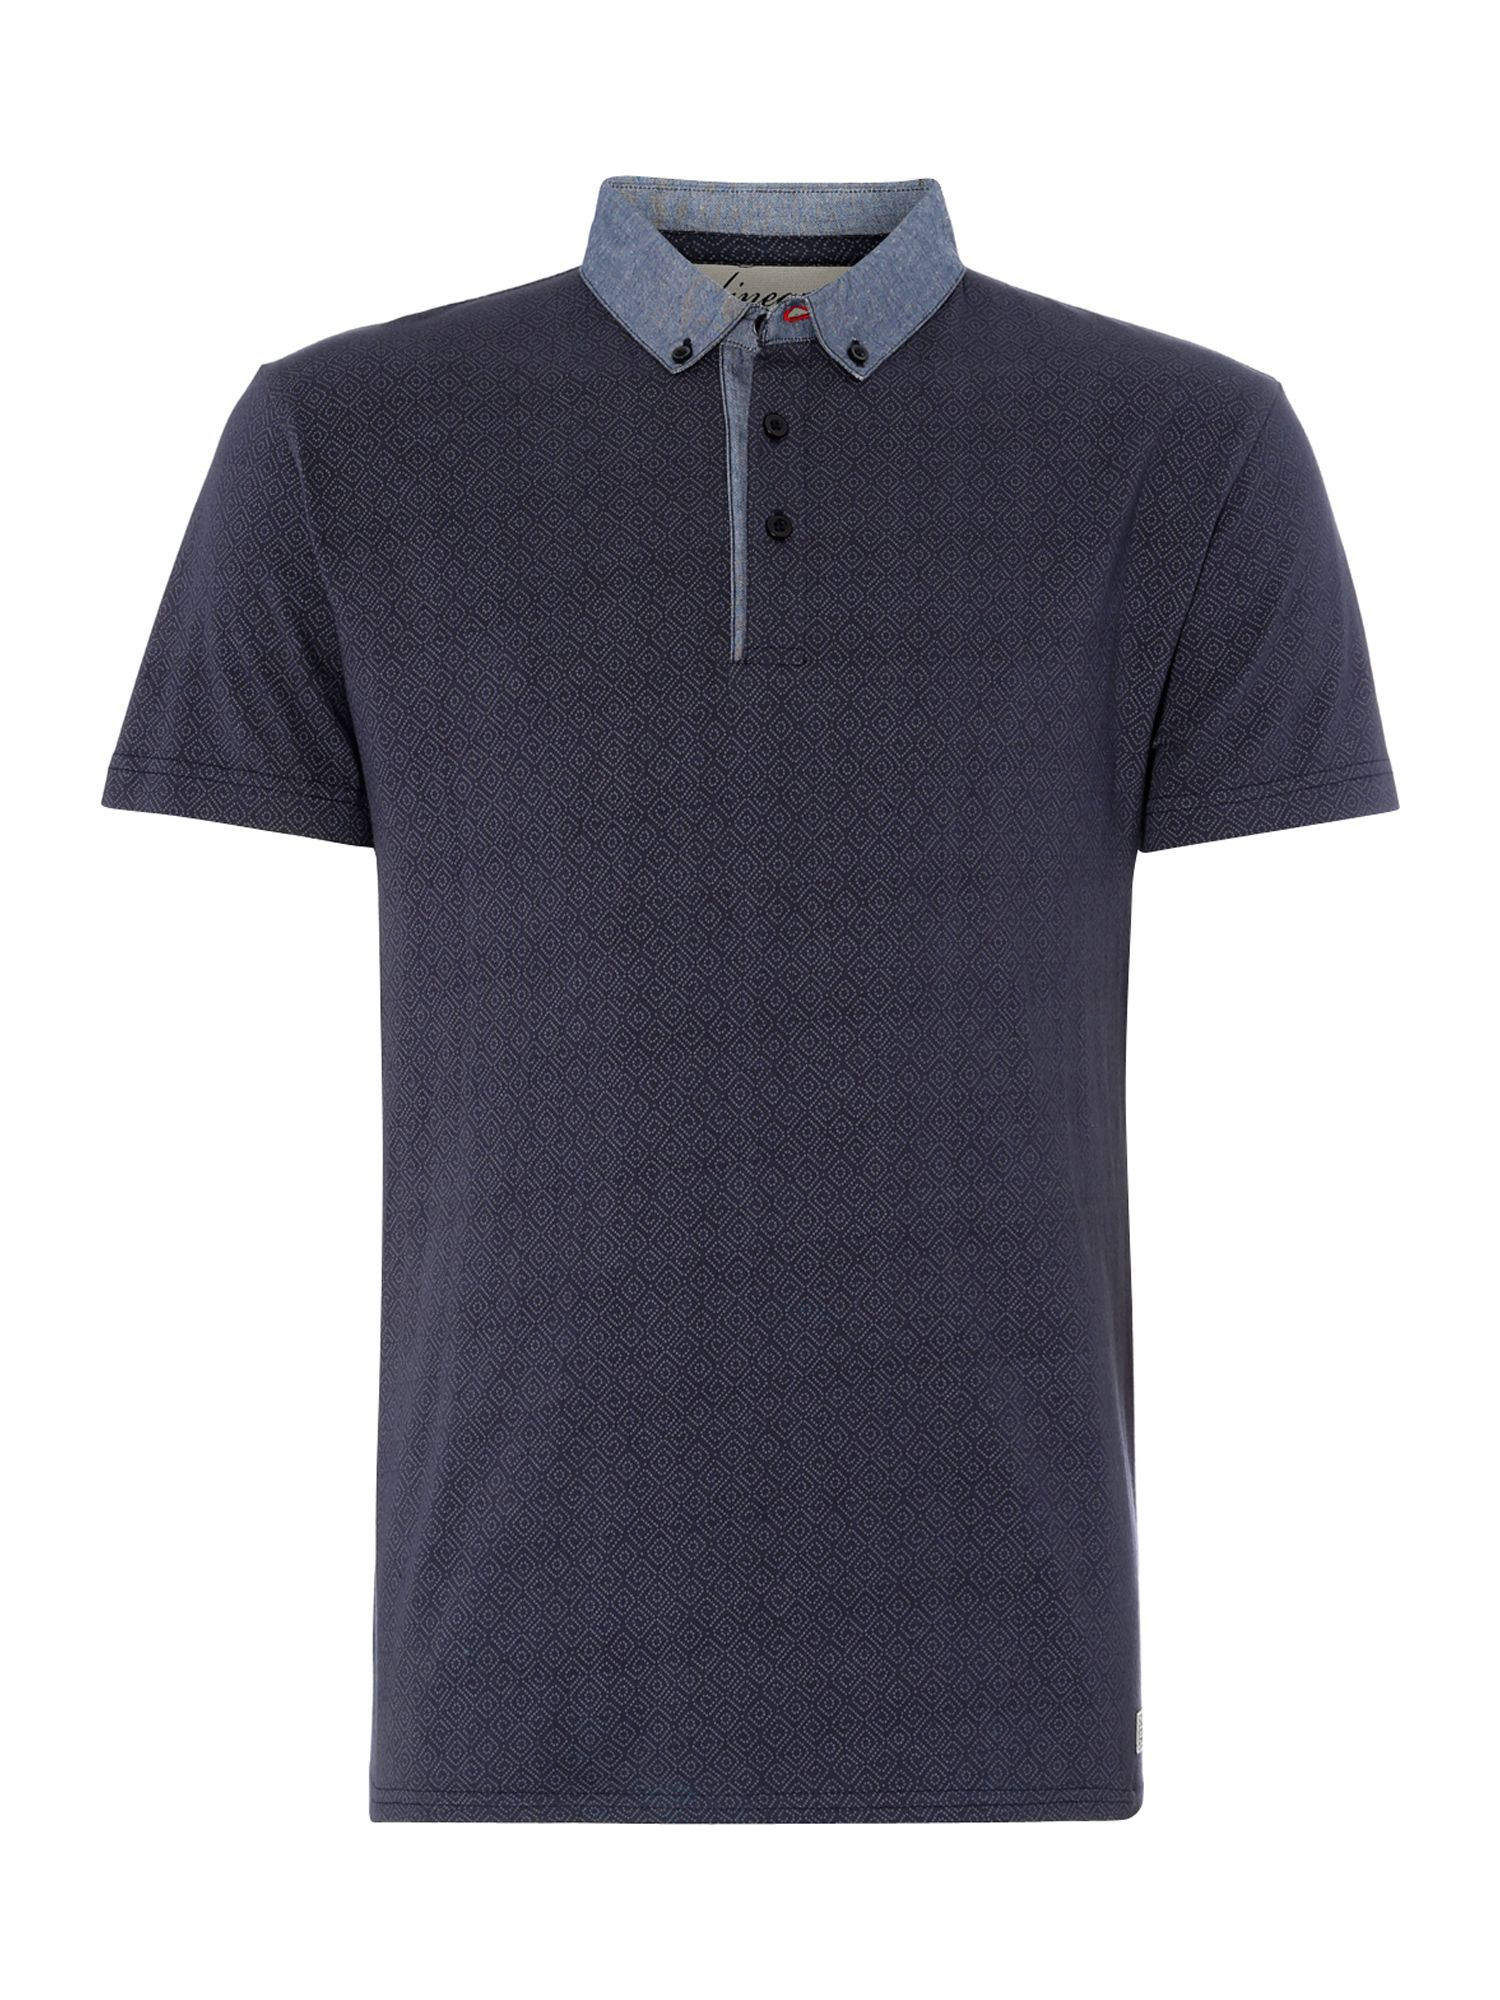 jefferson geometric print polo